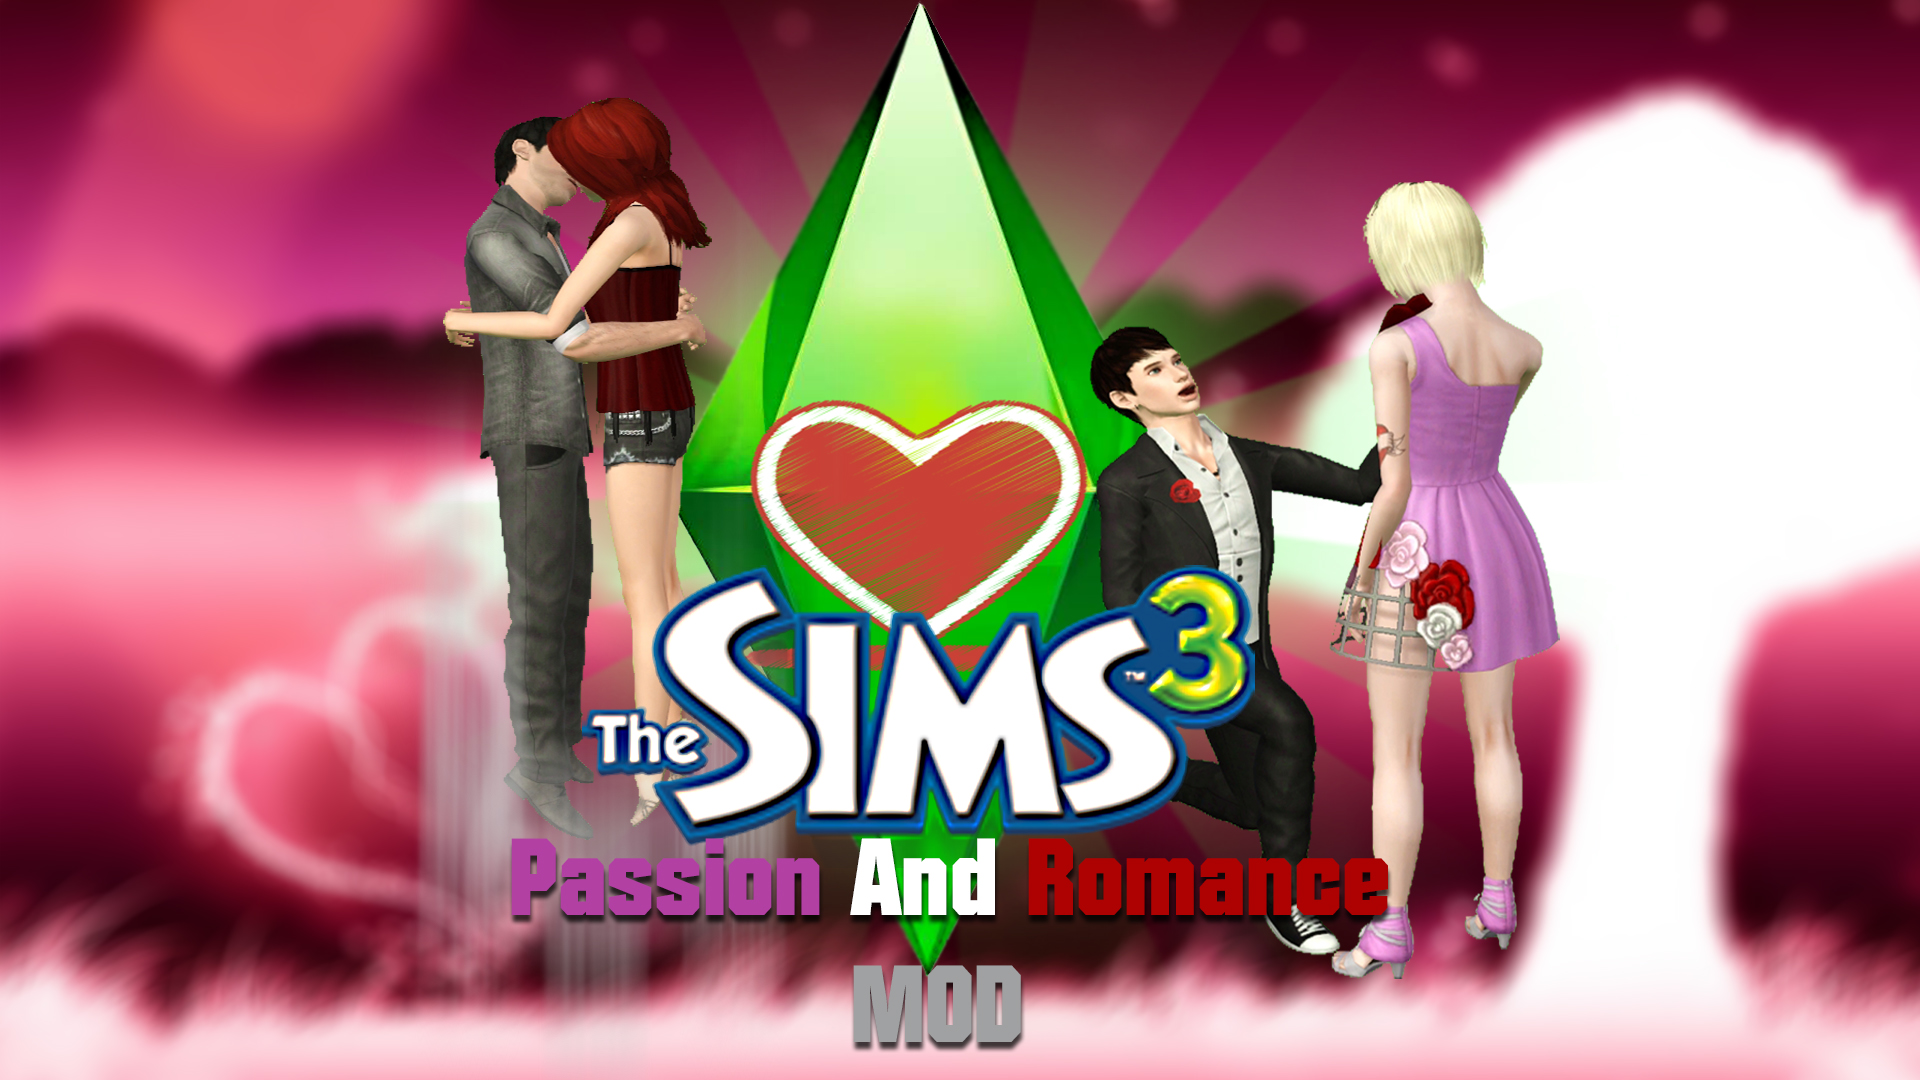 Sims 2 online dating mod in Brisbane